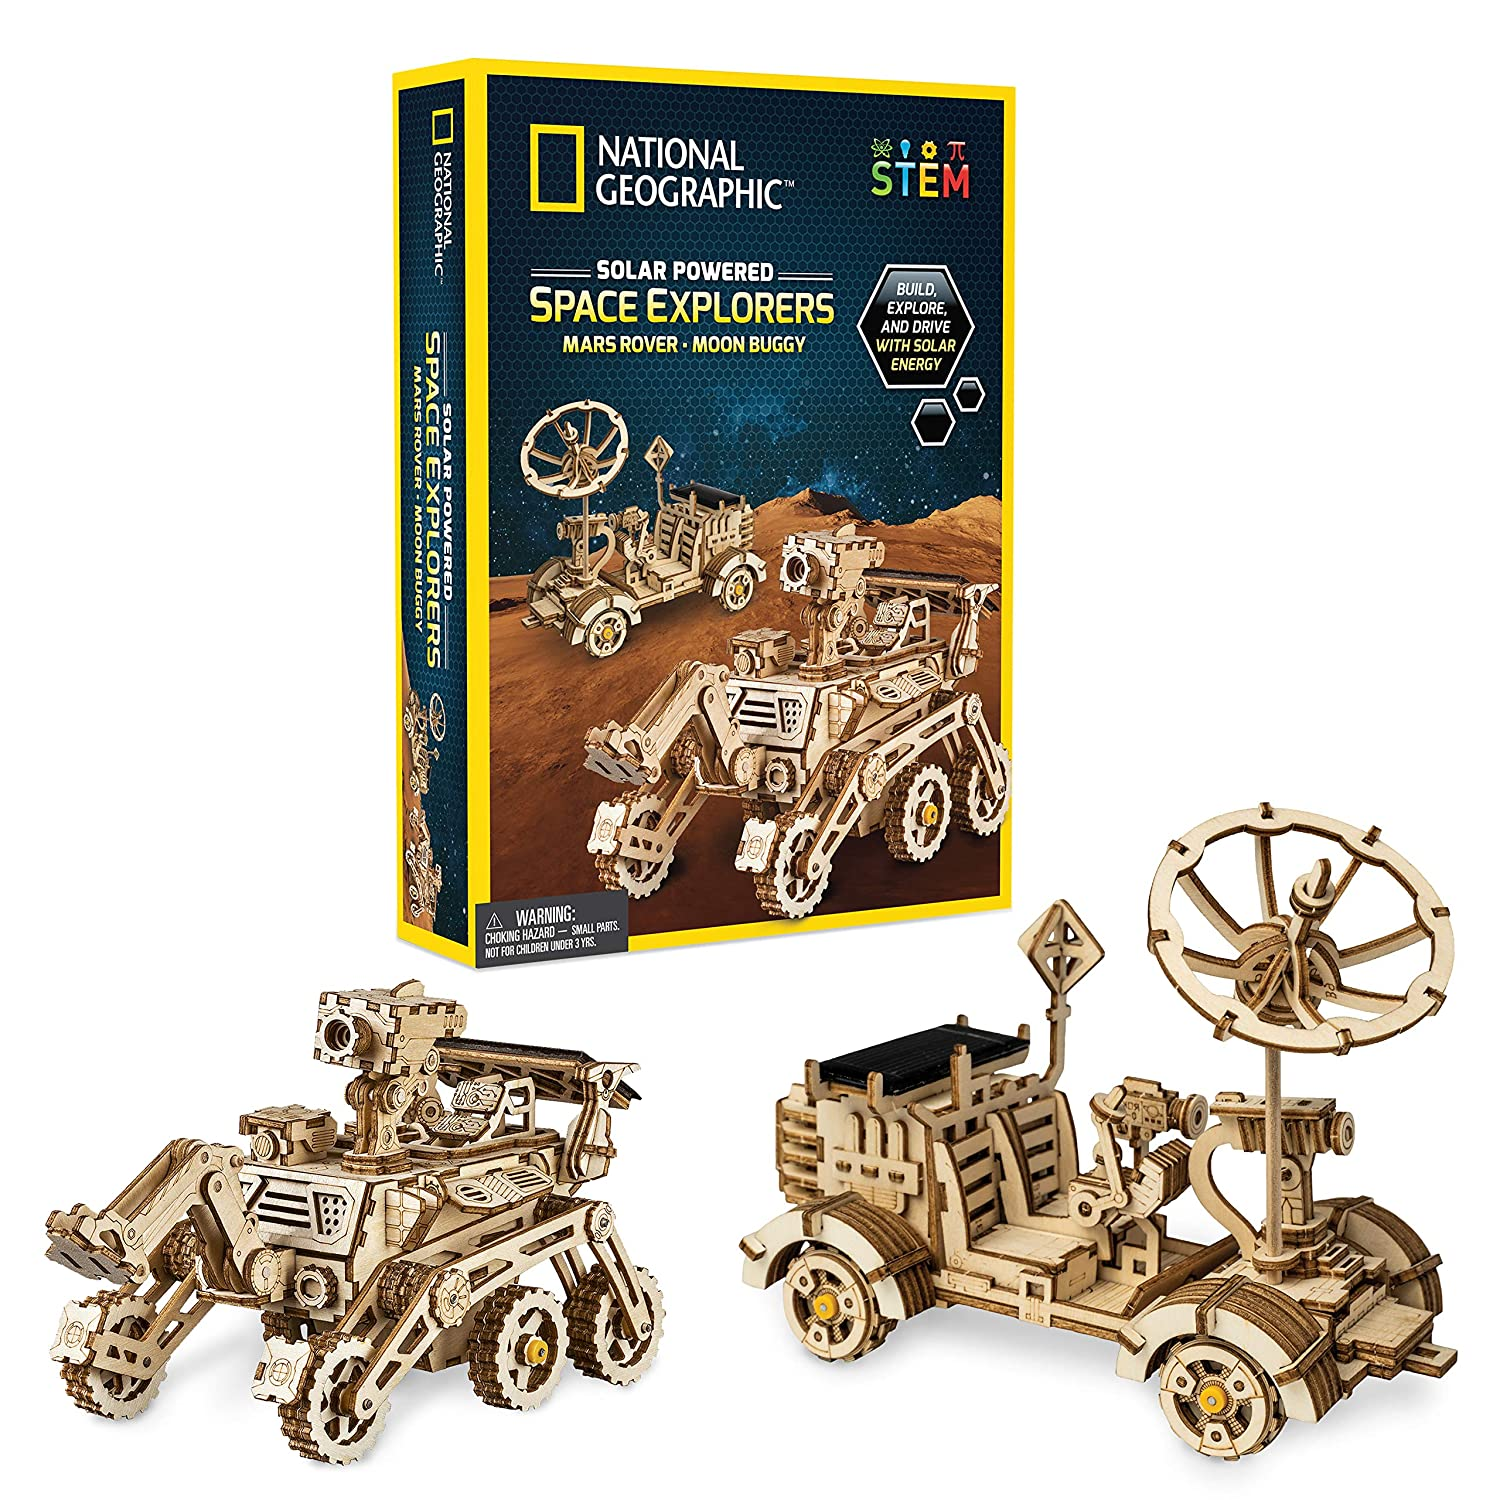 NATIONAL GEOGRAPHIC Solar Space Explorers - DIY Moon Buggy and Mars Rover Model Kit, Each Powered by a Solar Panel, Great STEM Toy for Girls and Boys Interested in Outer Space and Engineering